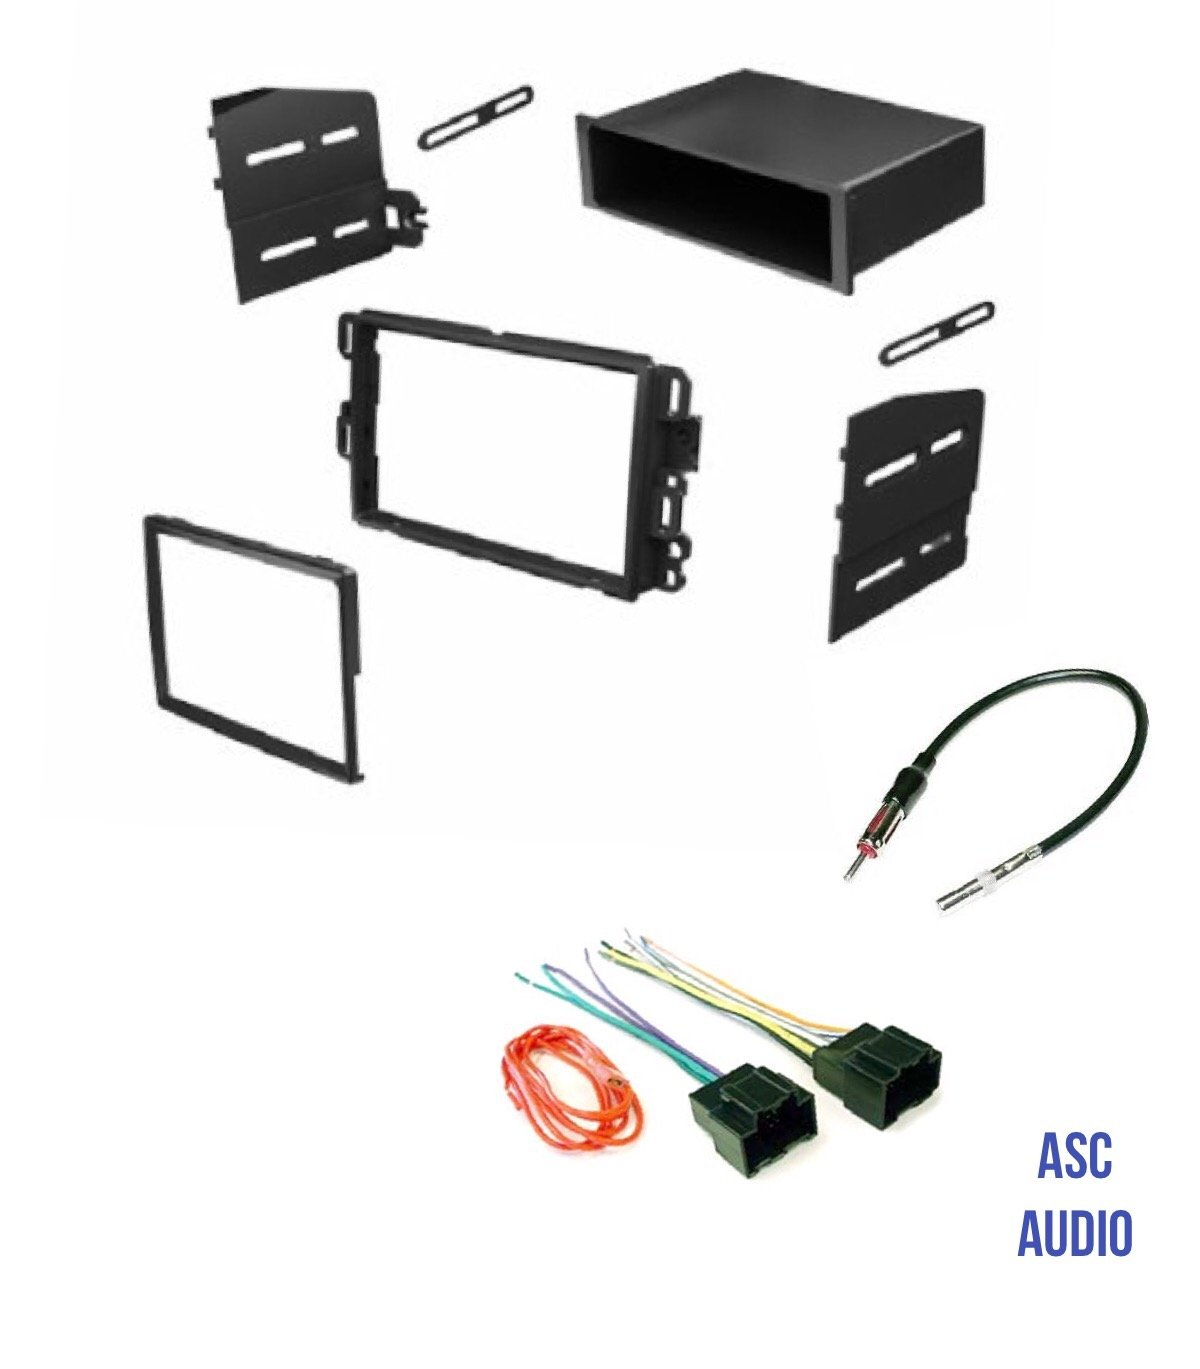 Car Stereo Install Dash Kit, Wire Harness, and Antenna Adapter to Add Radio for some GM LAN29 Buick Chevrolet GMC Pontiac Saturn.- Basic Wire Won't Work With All Vehicles- See Important Notes Below